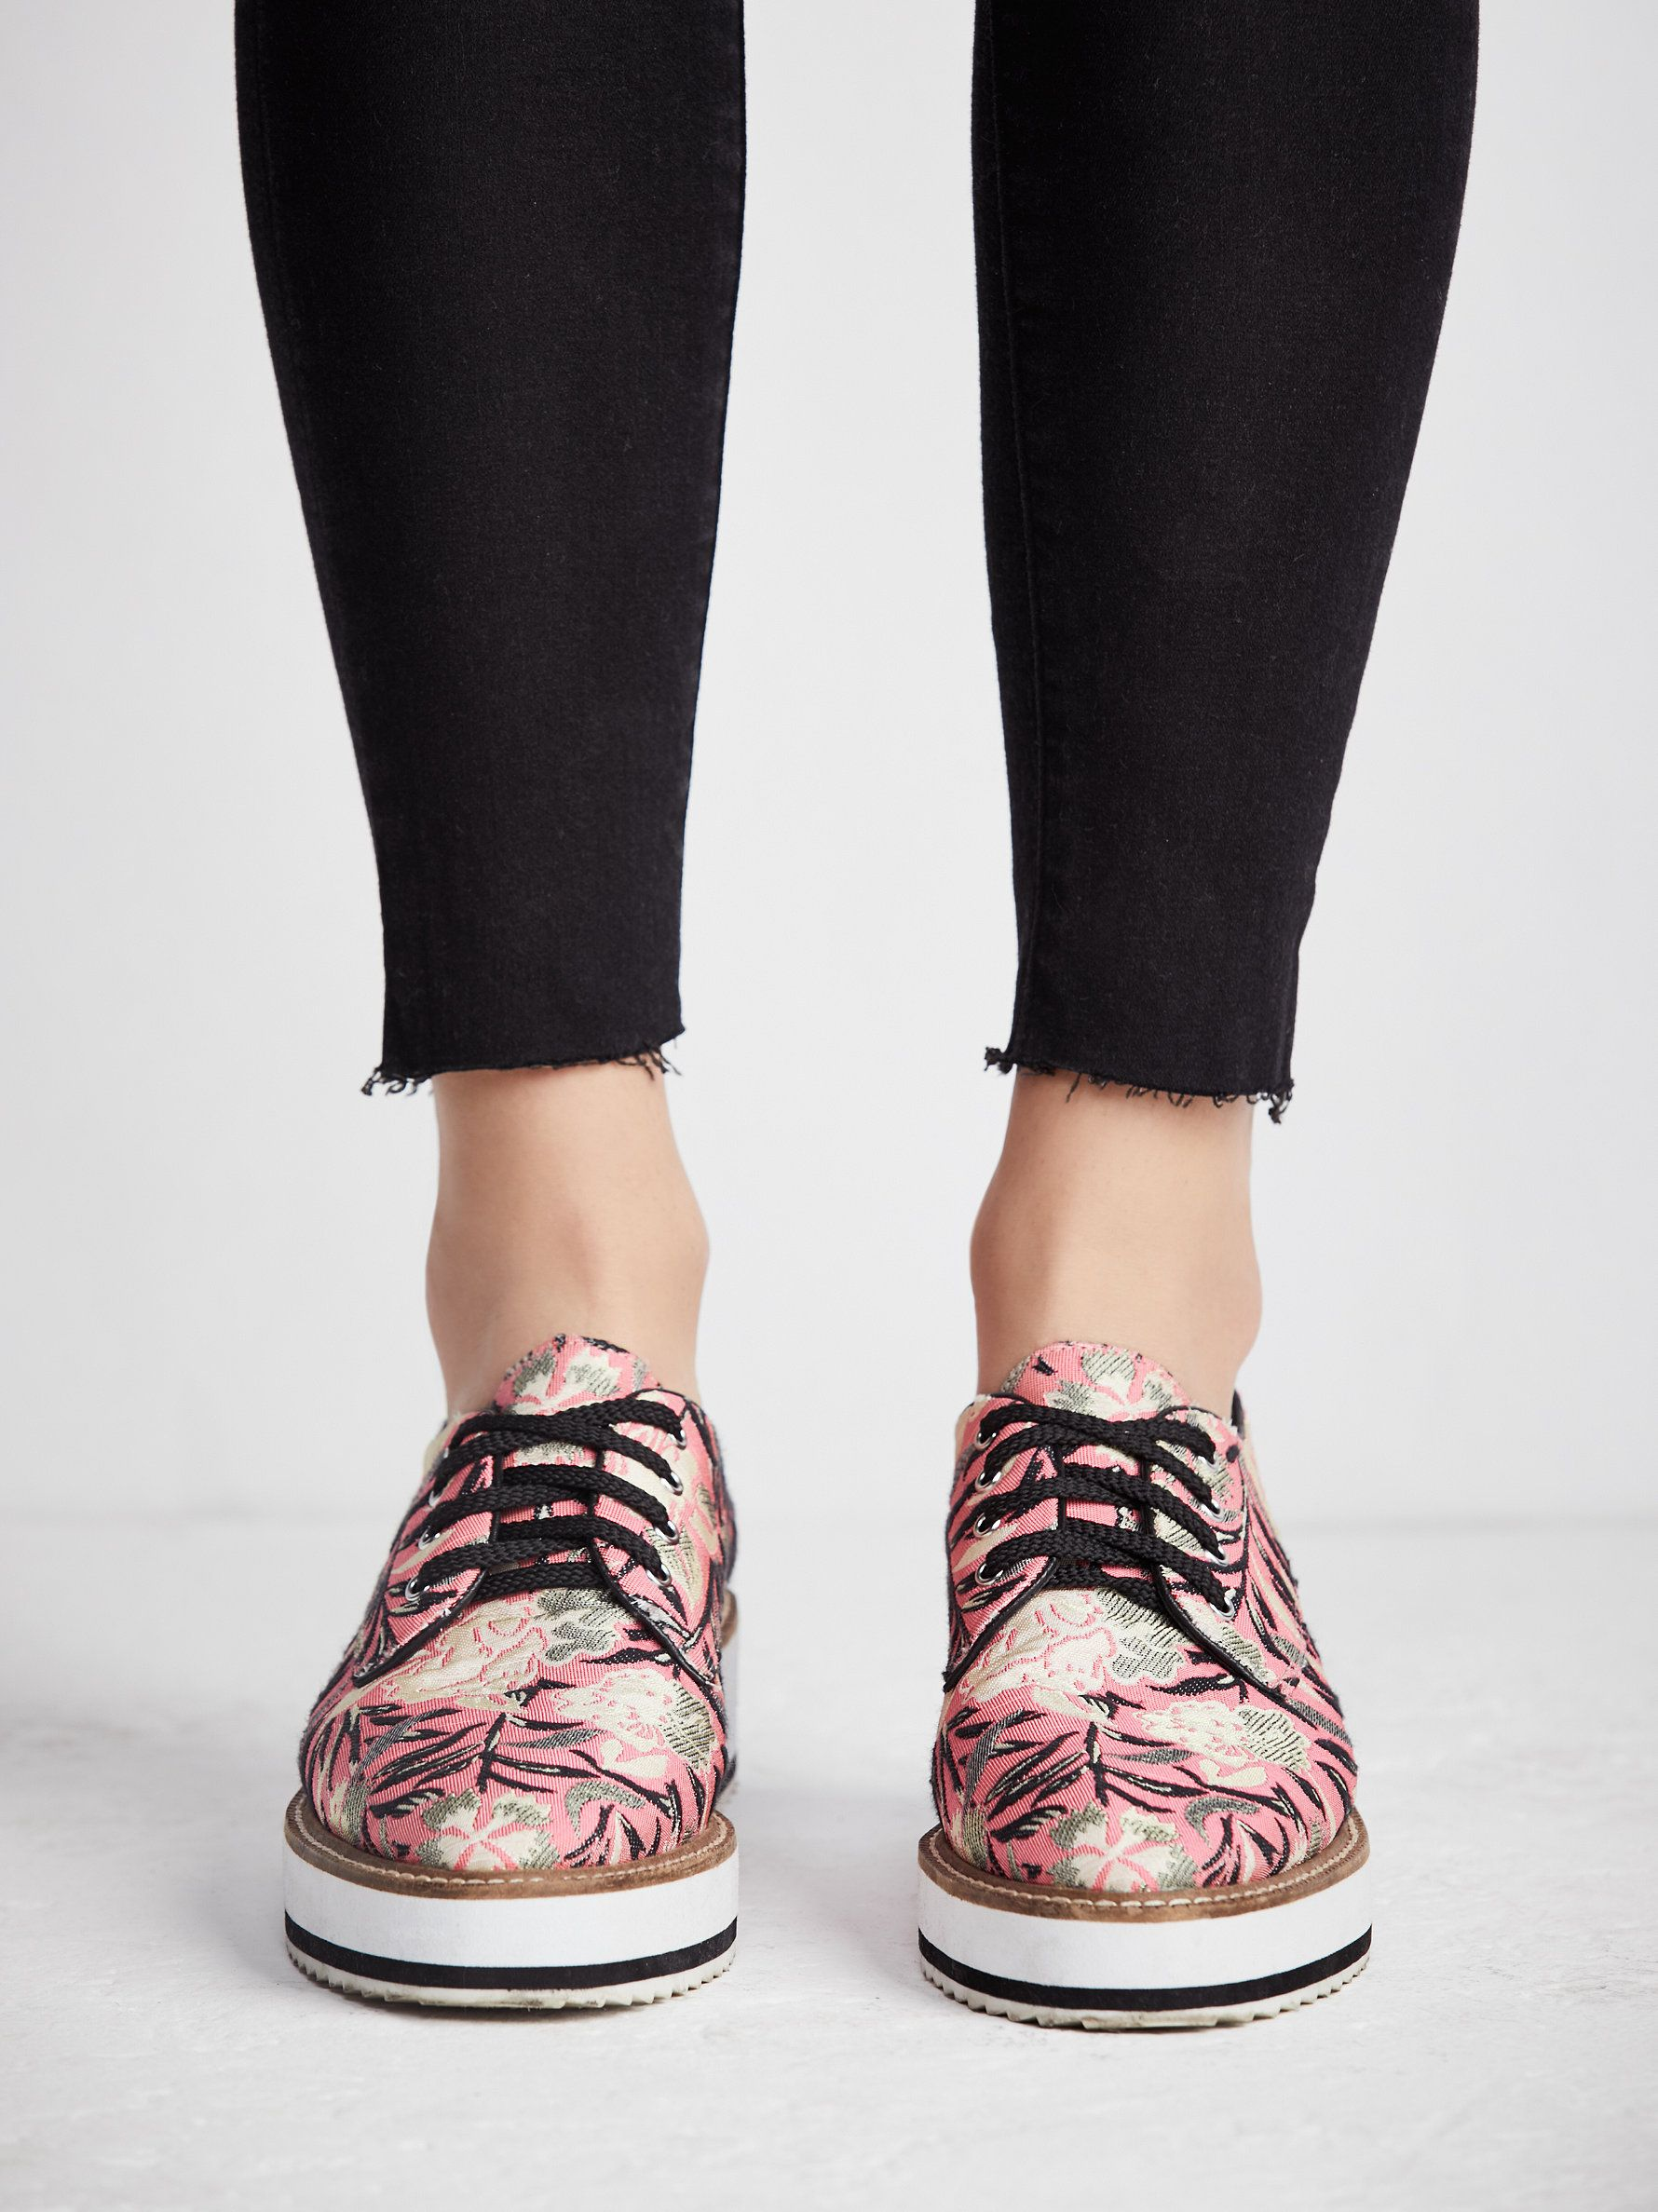 We love florals! Check out our floral platform loafers at Free People! Shop Shellys London!